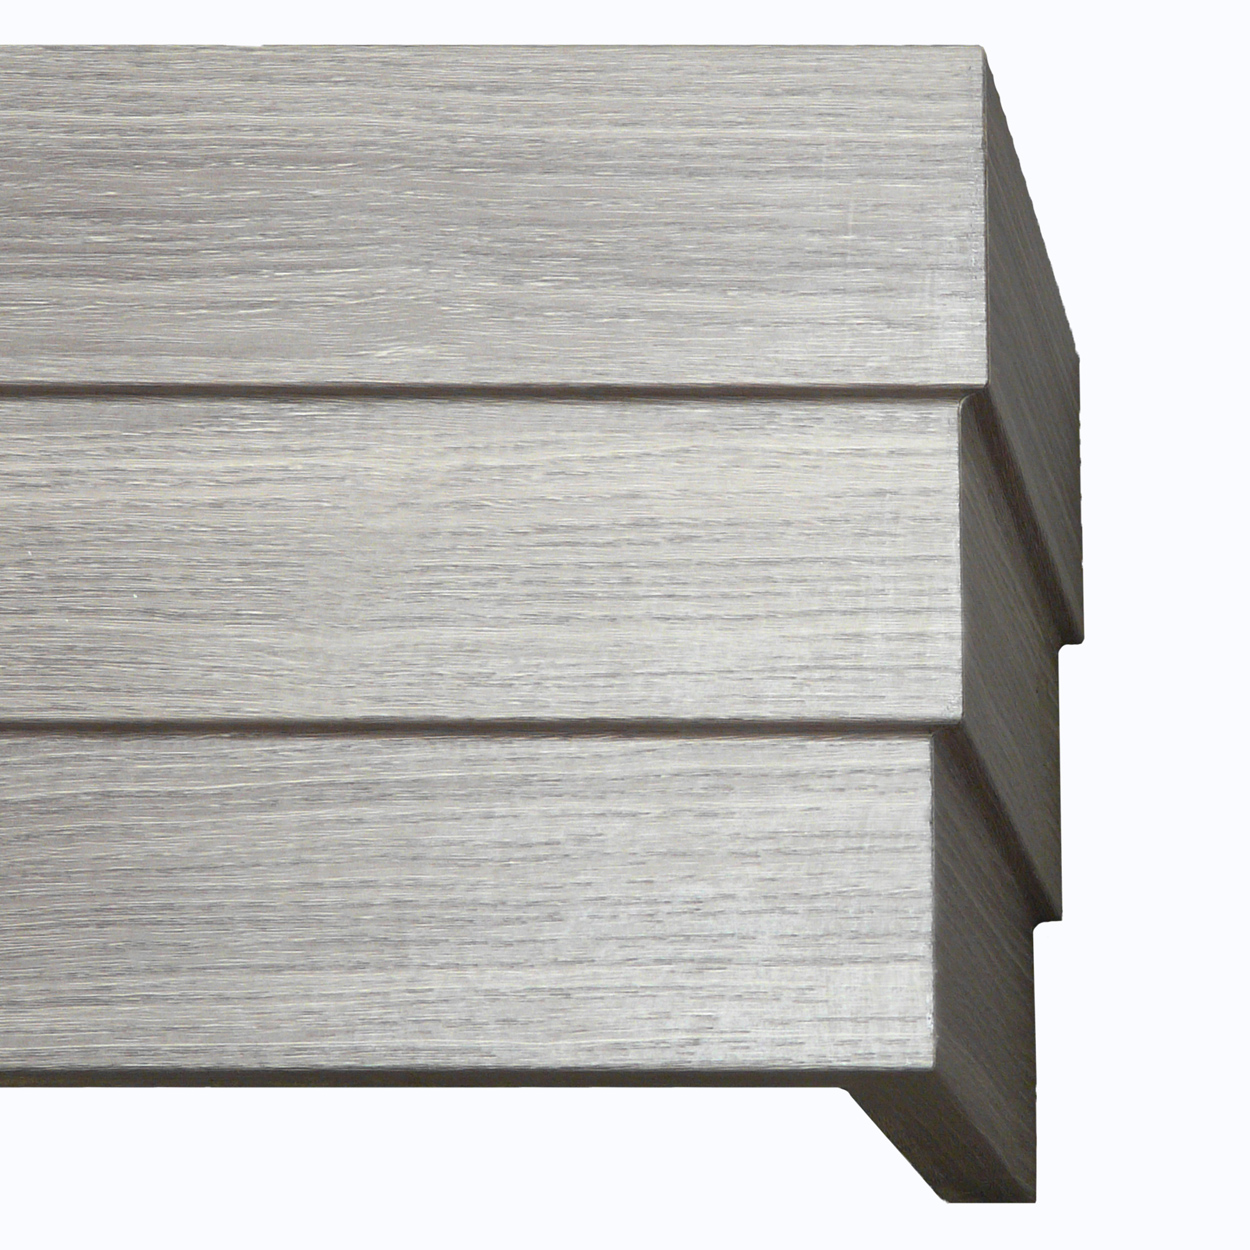 Stairstep Gray Wood Grain